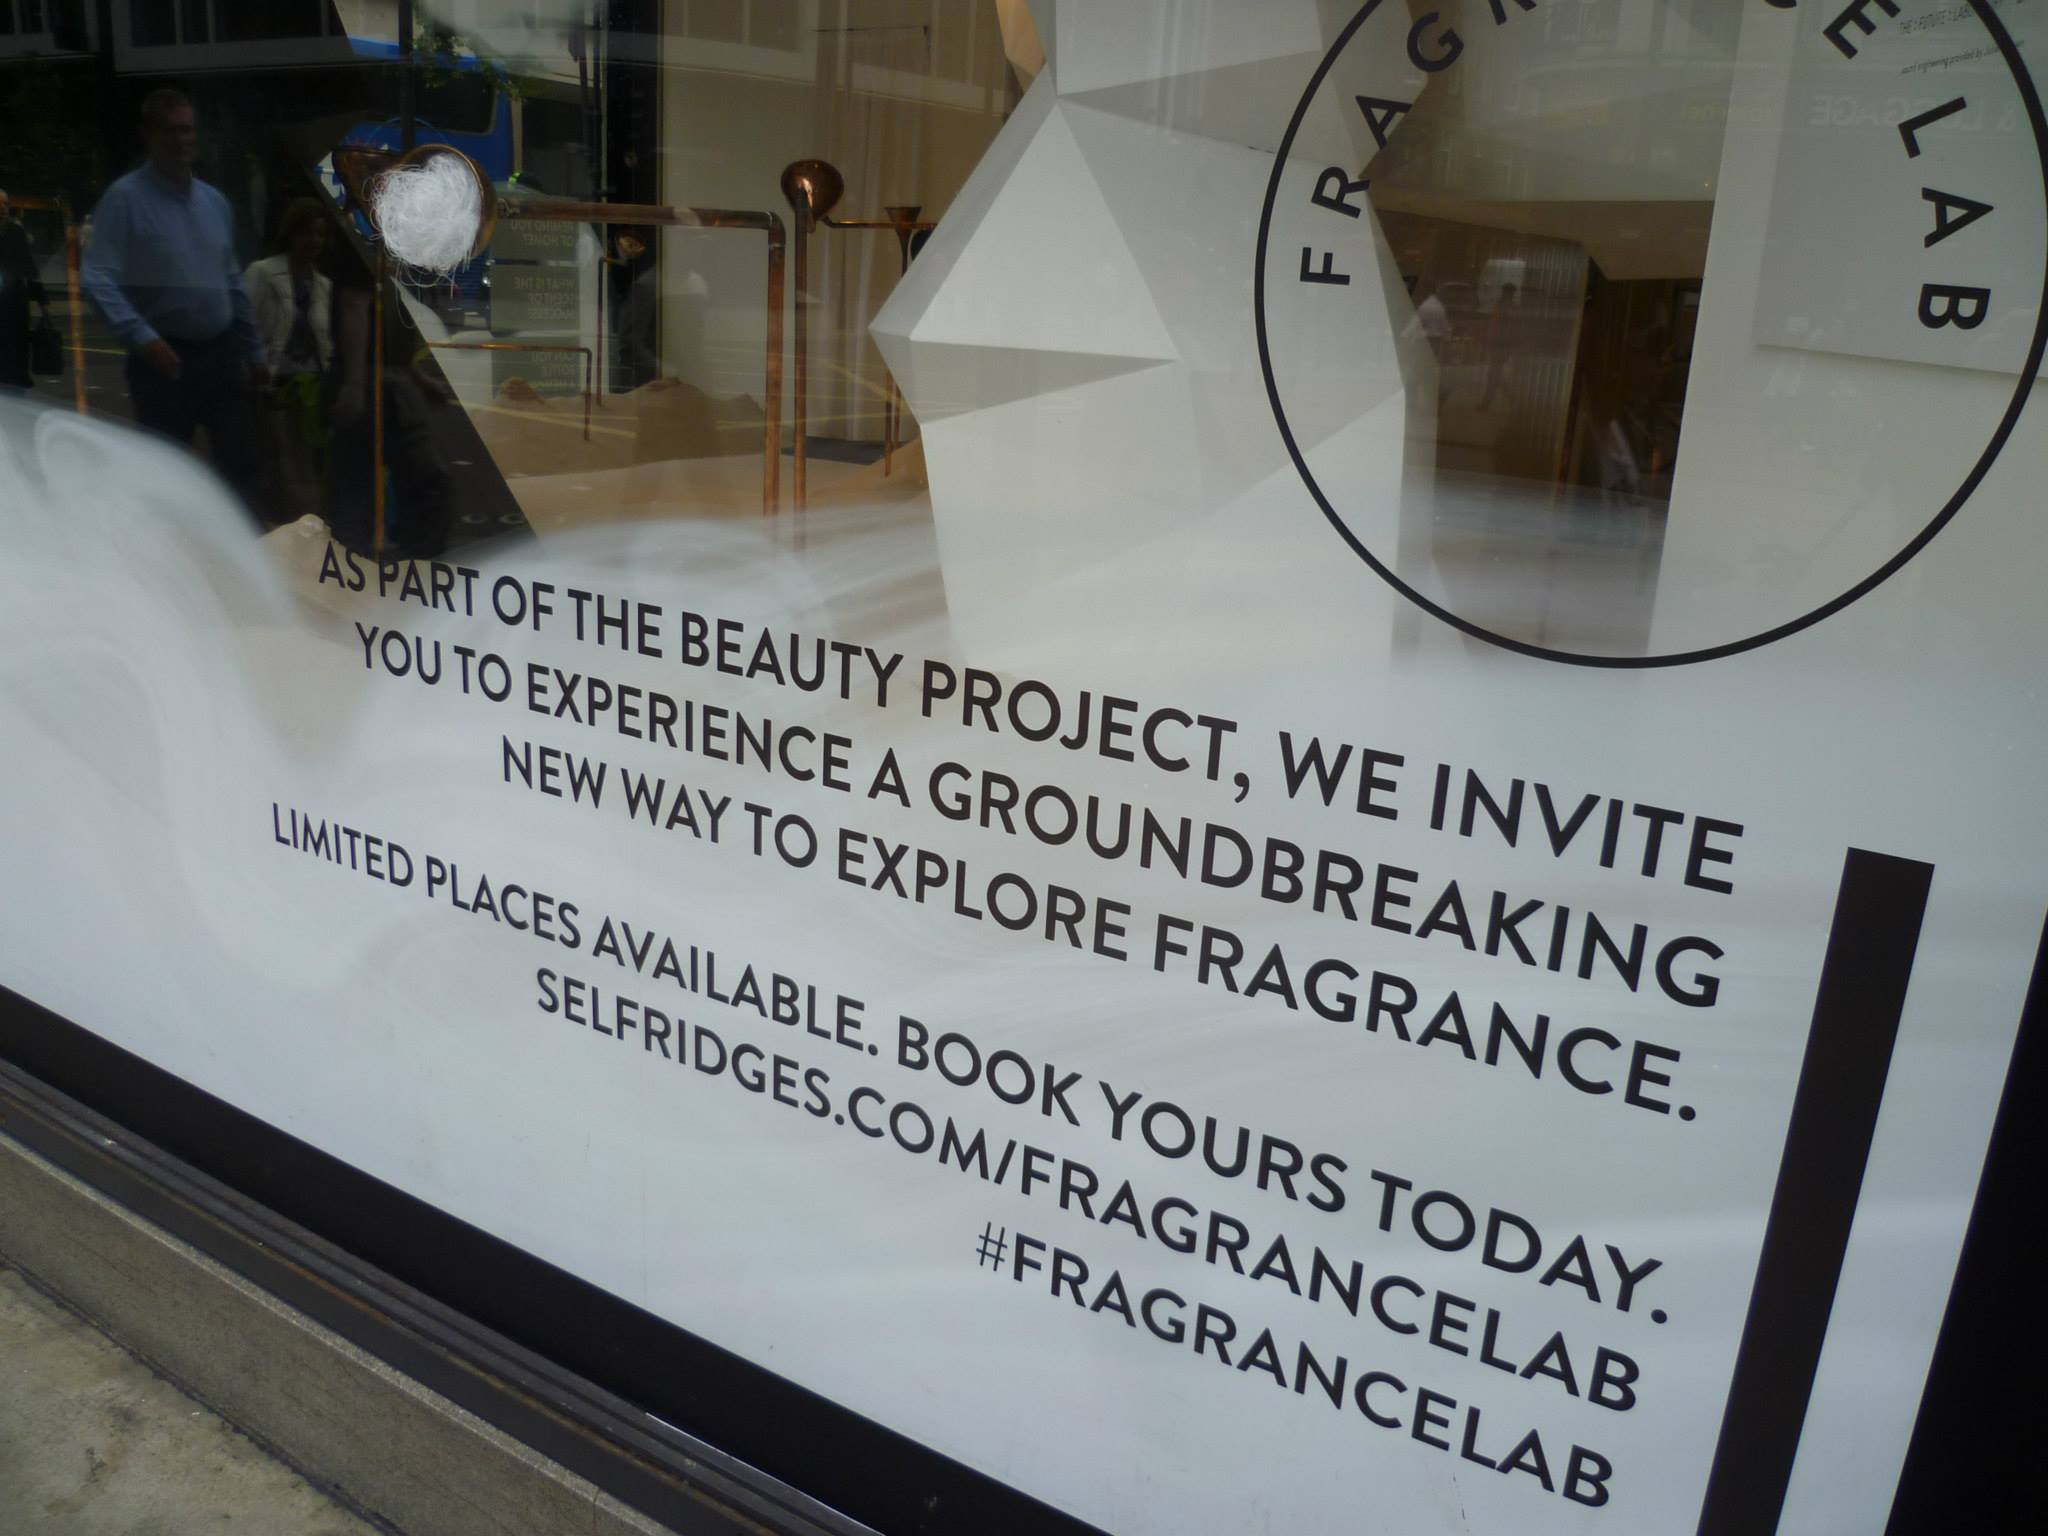 selfridges-fragrance-lab-unique-experience